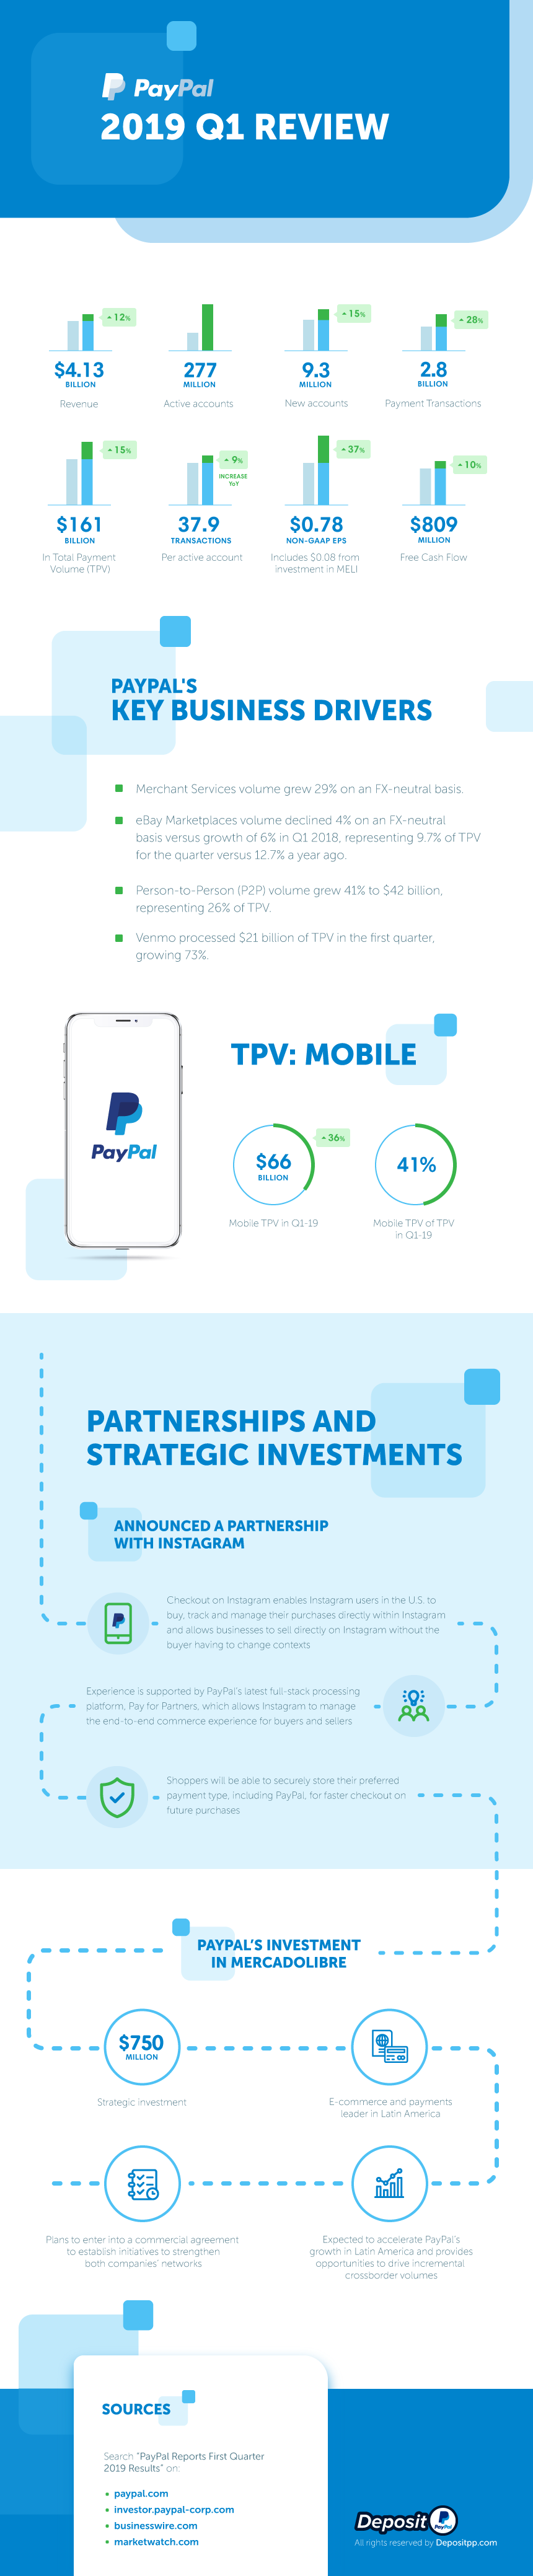 PAYPAL REPORTS FIRST QUARTER 2019 RESULTS